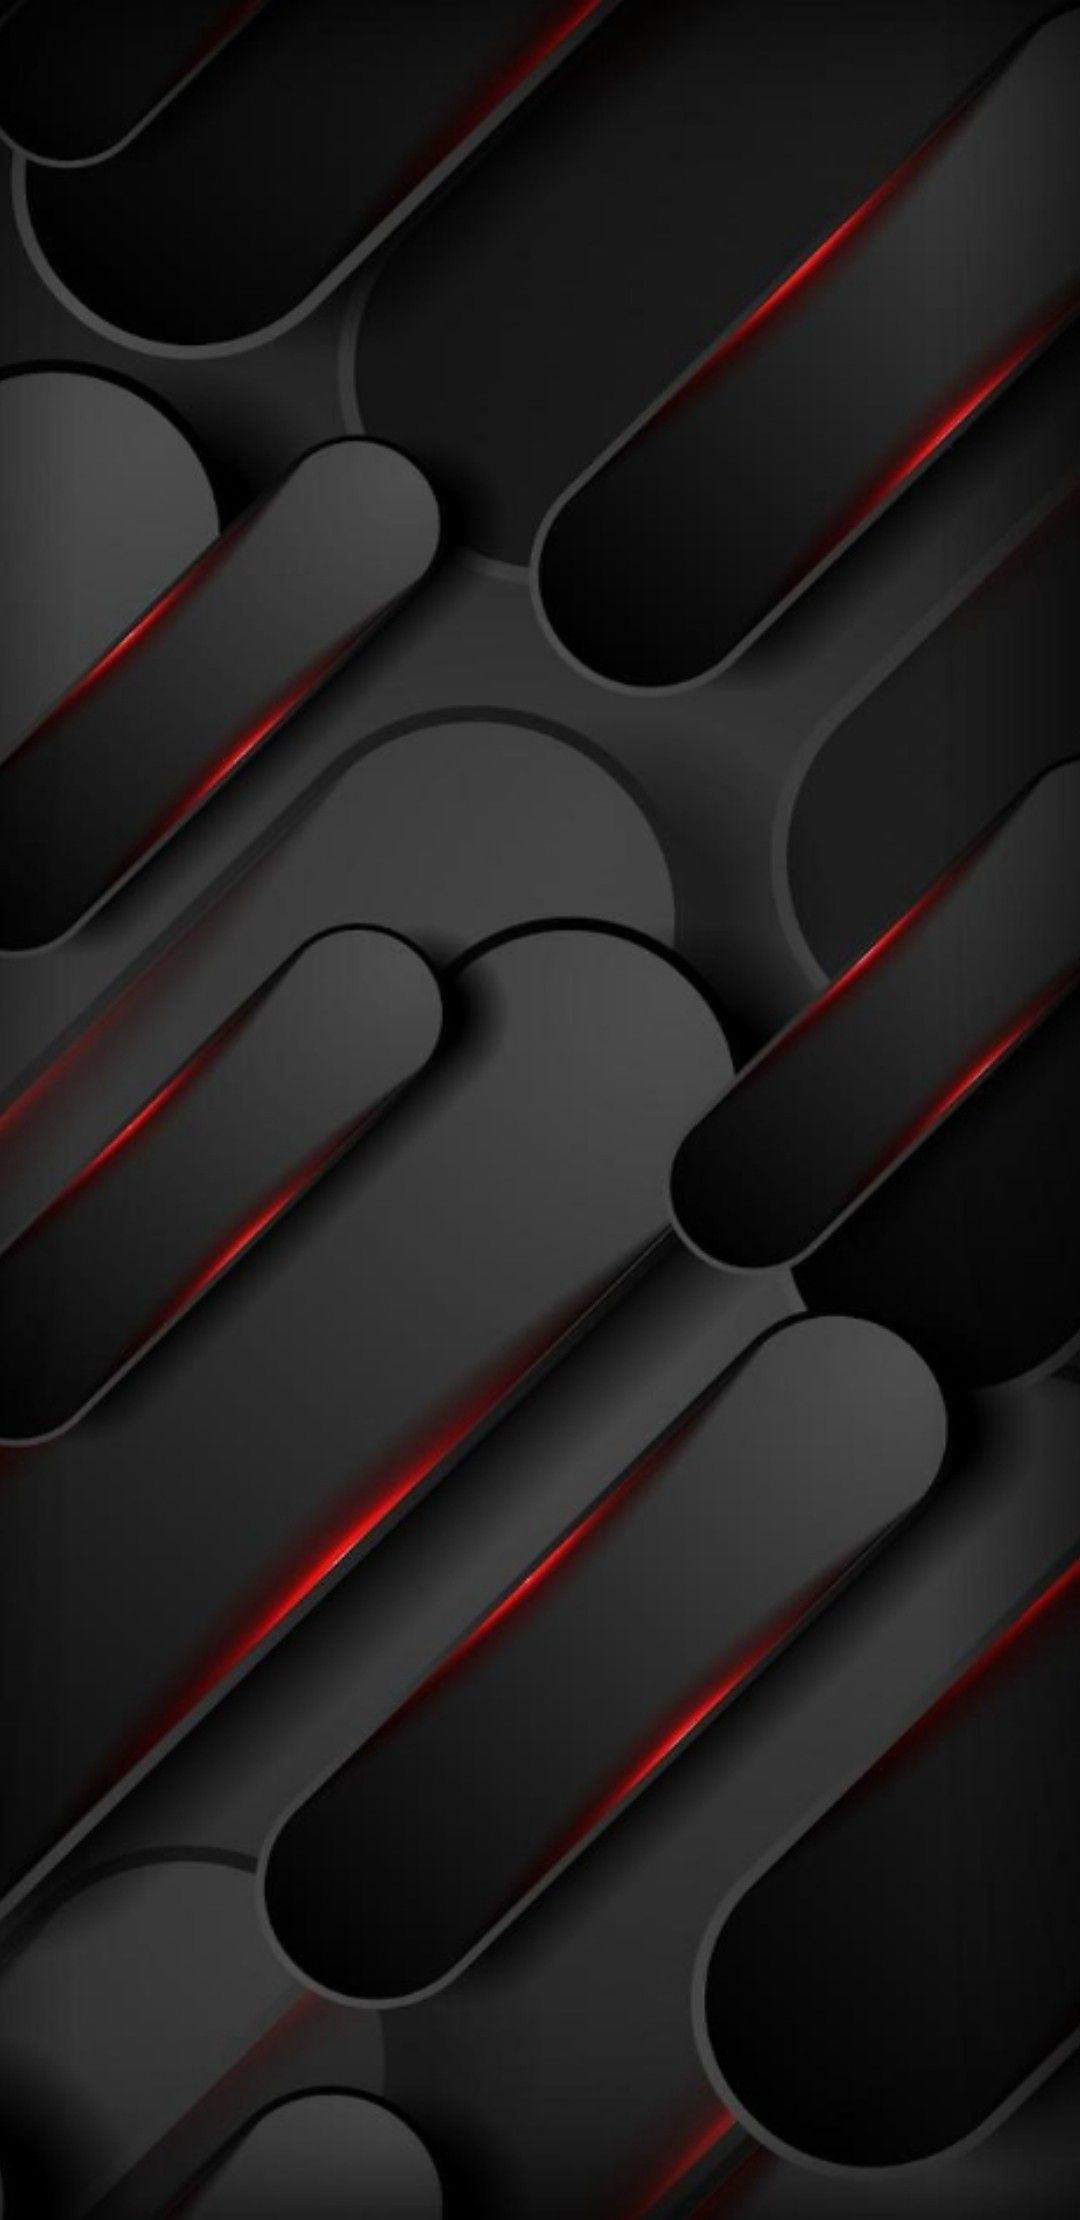 Black Textures Art Wallpaper Phone Wallpaper Design Red And Black Wallpaper Black Phone Wallpaper